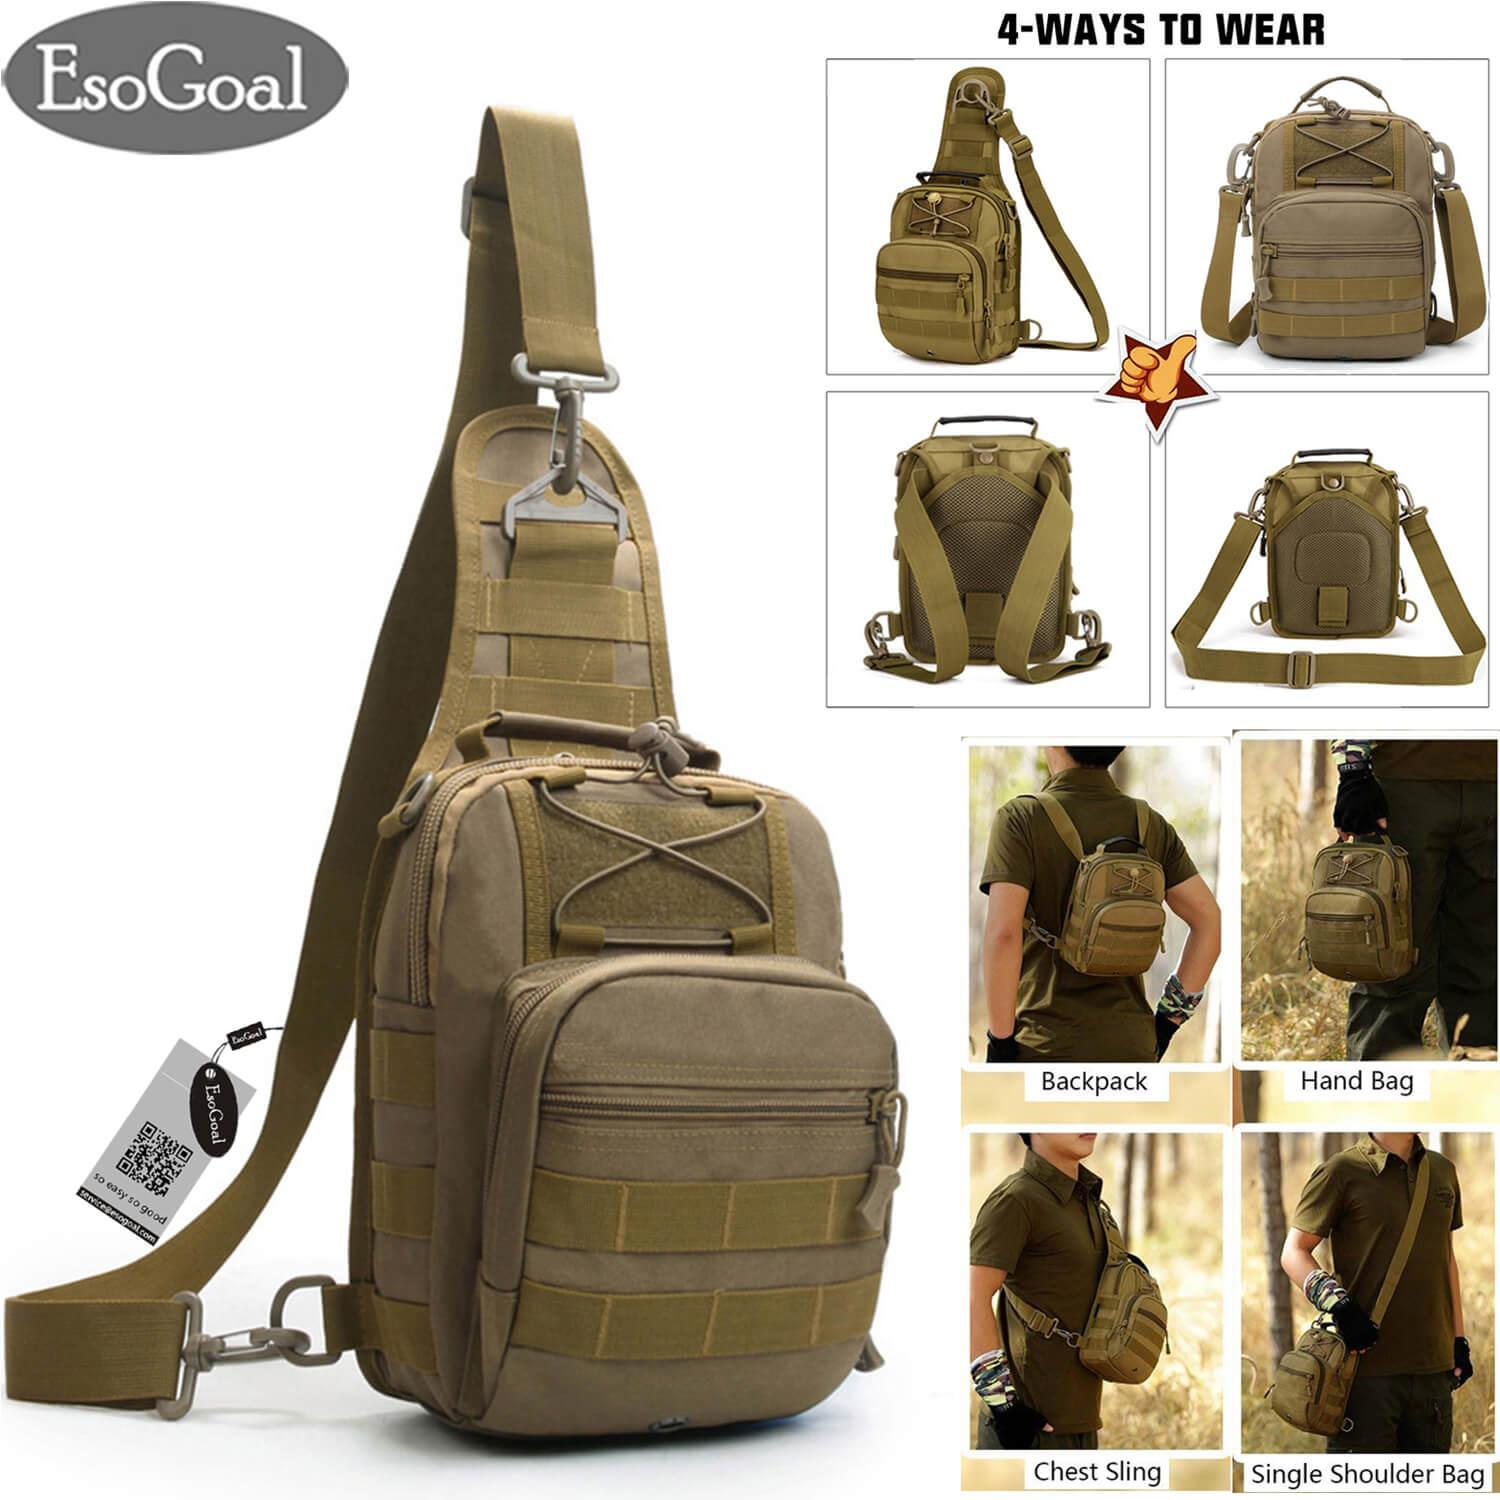 Sports & Entertainment Unisex Military Tactical Chest Pack Nylon Cross Body Sling Single Shoulder Bag Fishing Camping Equipment Selling Well All Over The World